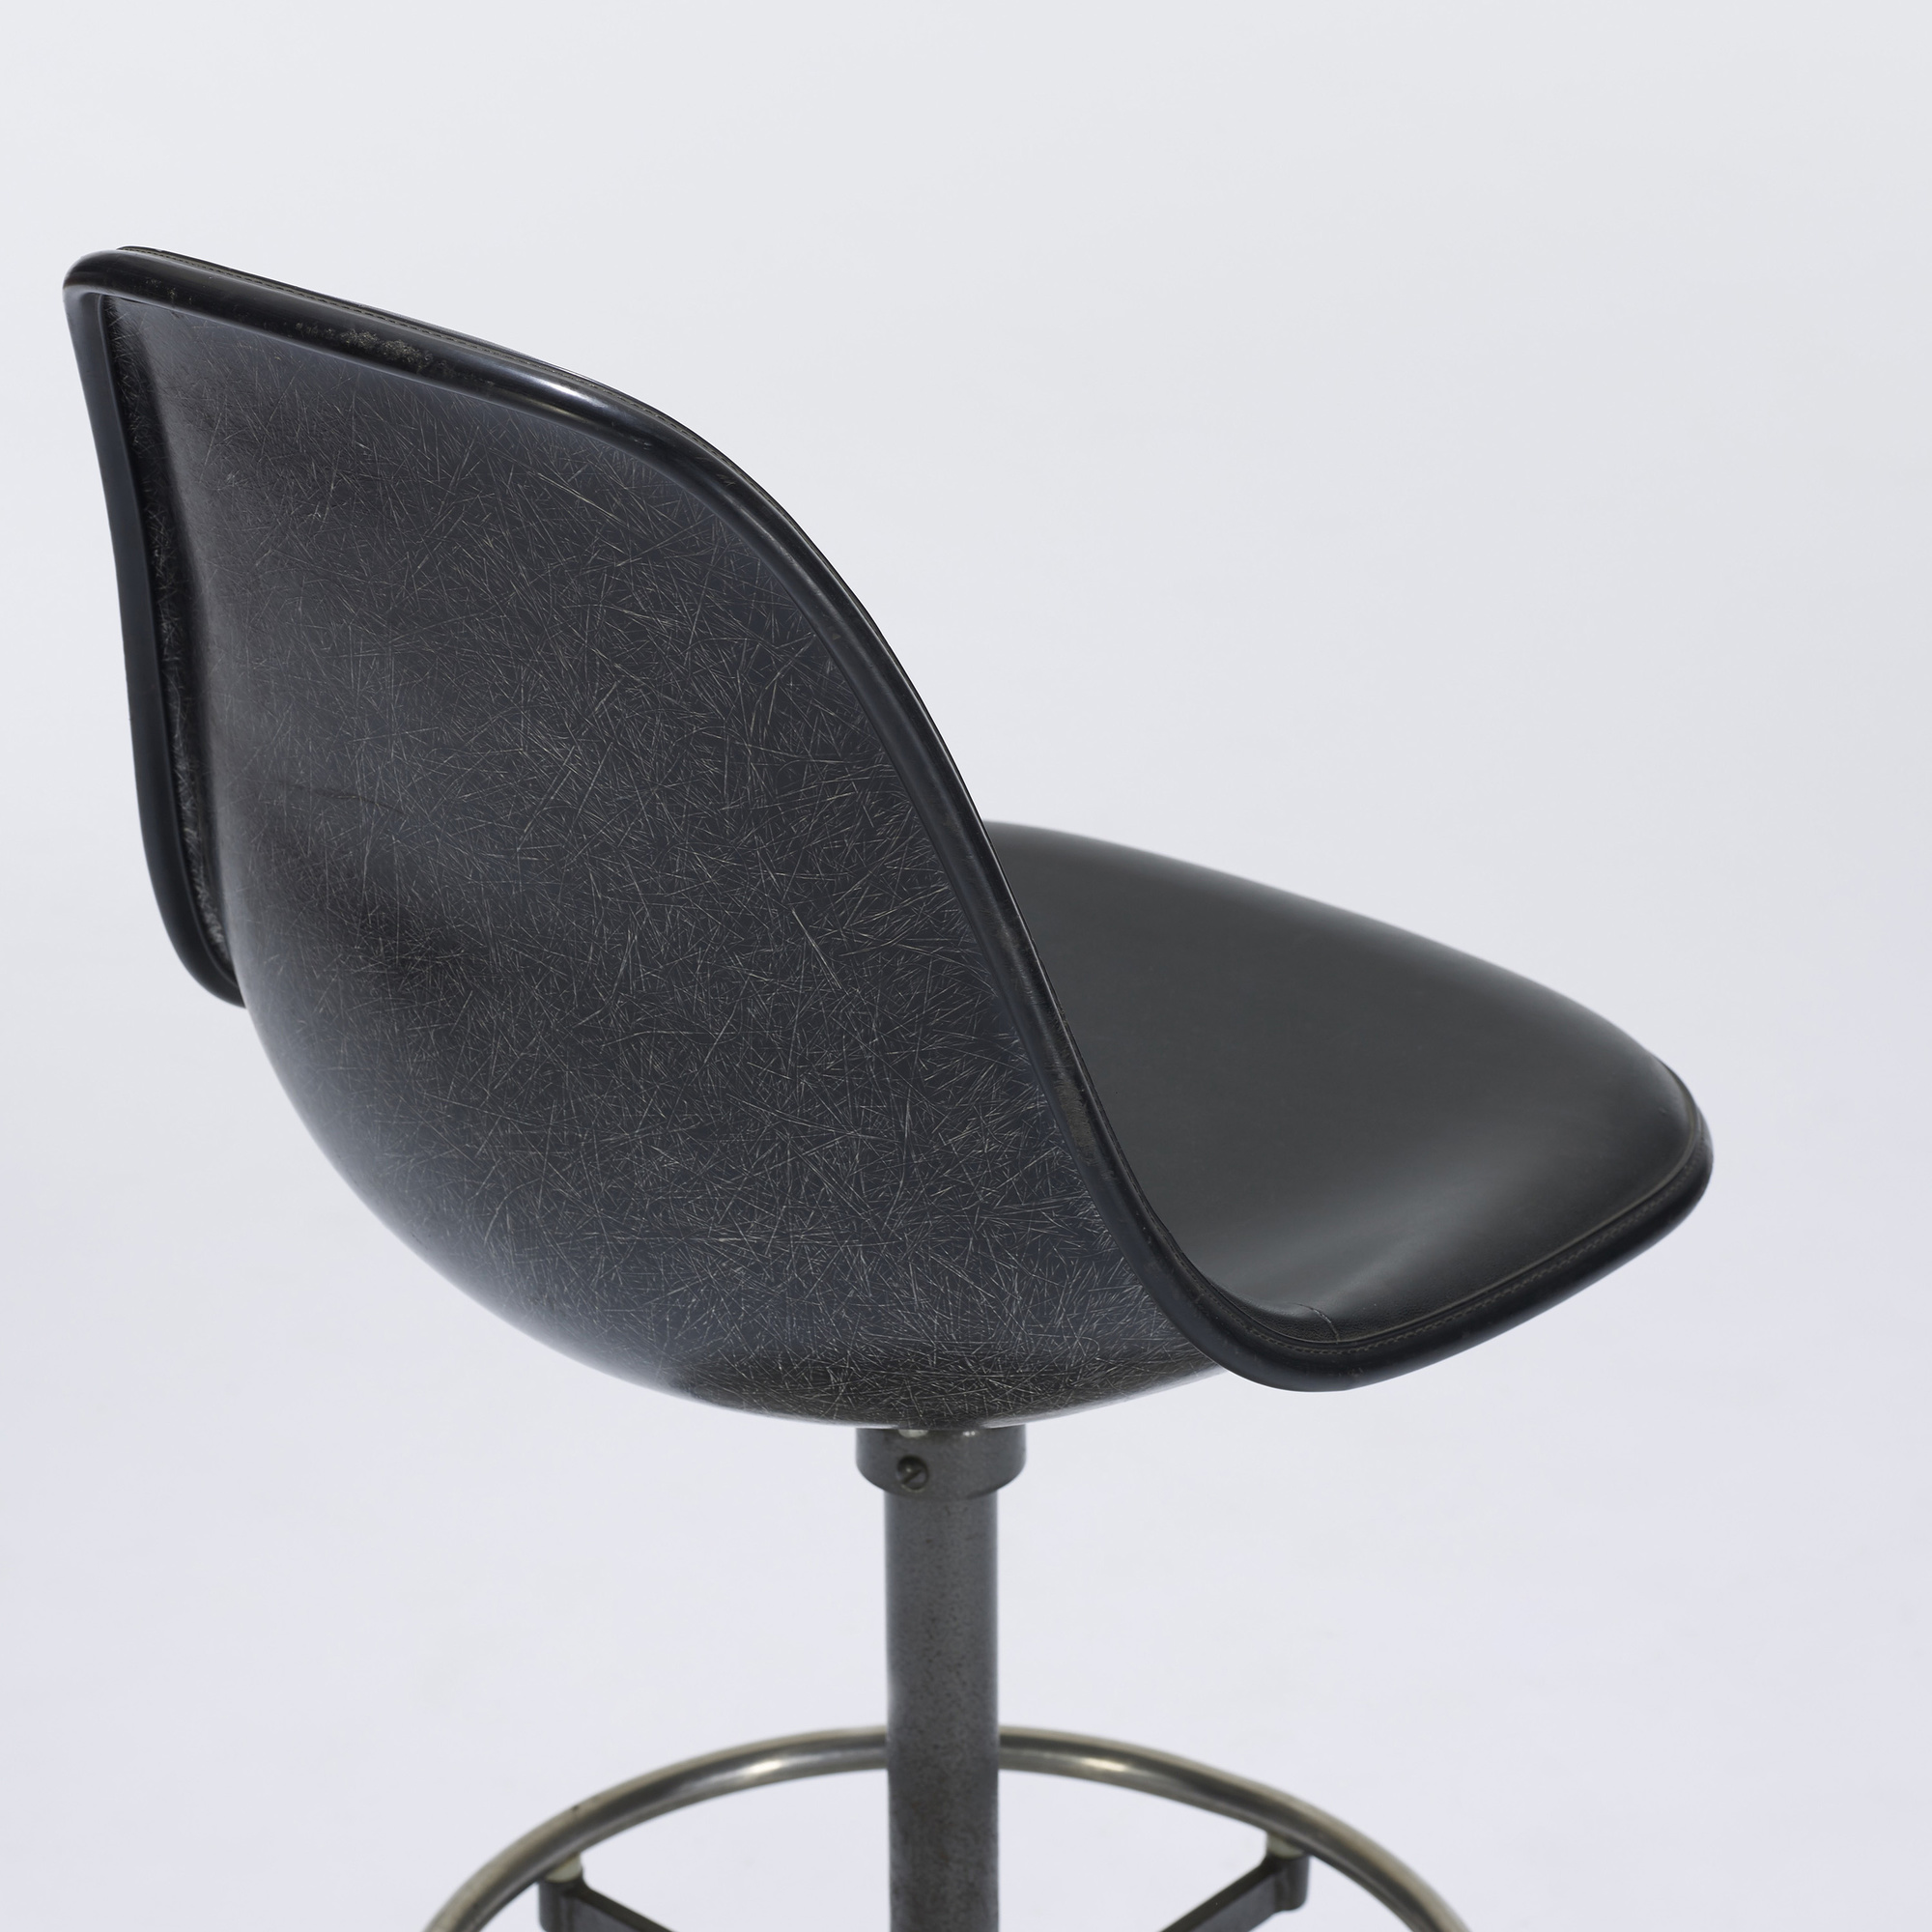 ... 257 Charles and Ray Eames / drafting chair model EC123-06 (3 & 257: CHARLES AND RAY EAMES drafting chair model EC123-06 u003c Eames ...